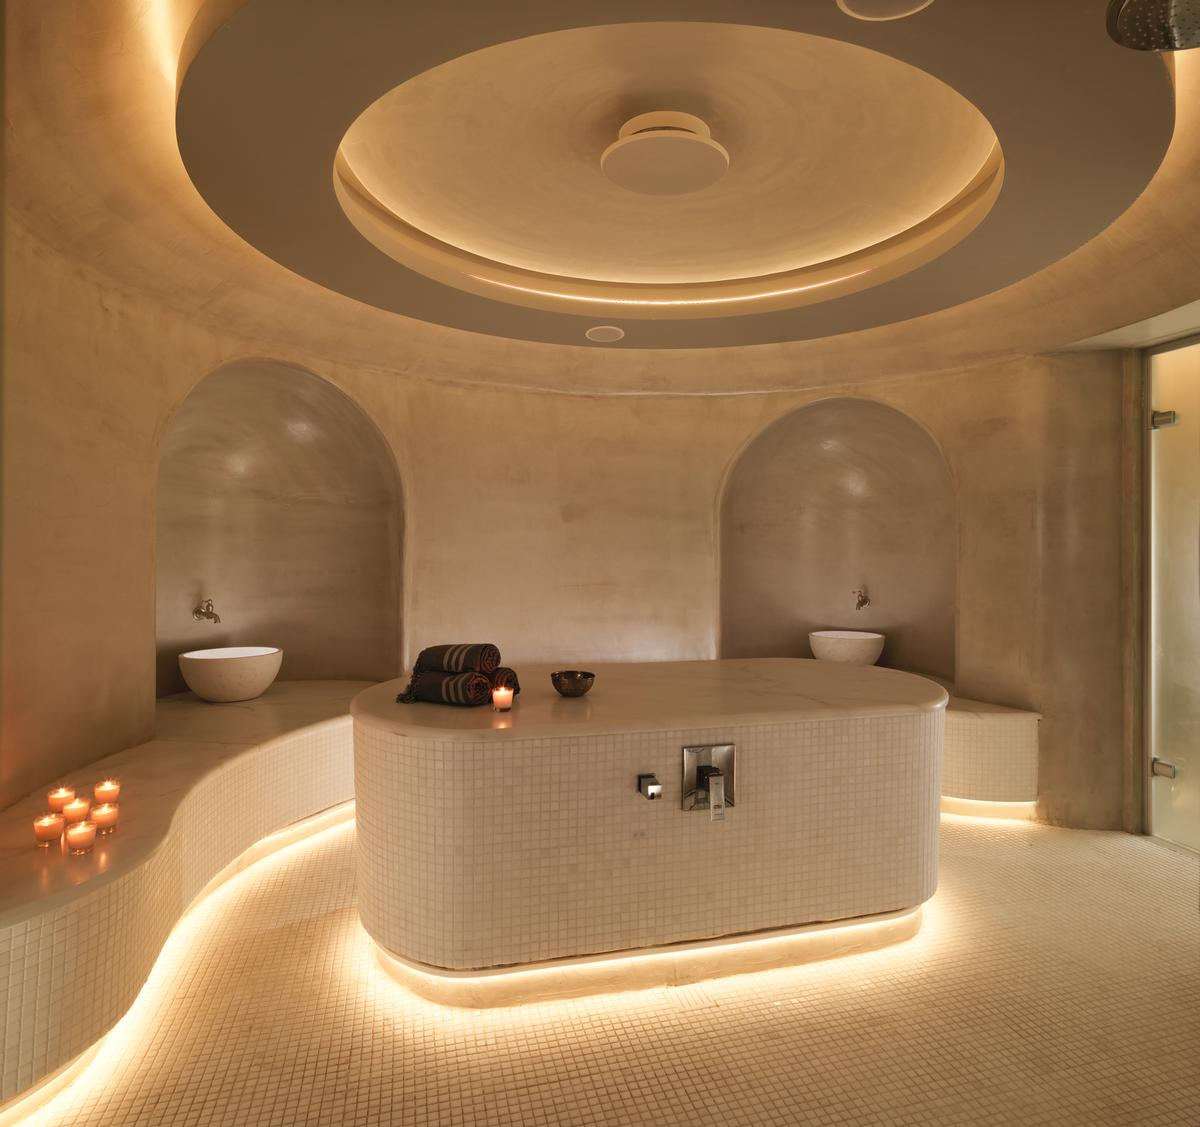 Cavernous spaces inside the resort mirror the interiors of Cycladic houses. / Courtesy of Niall Clutton